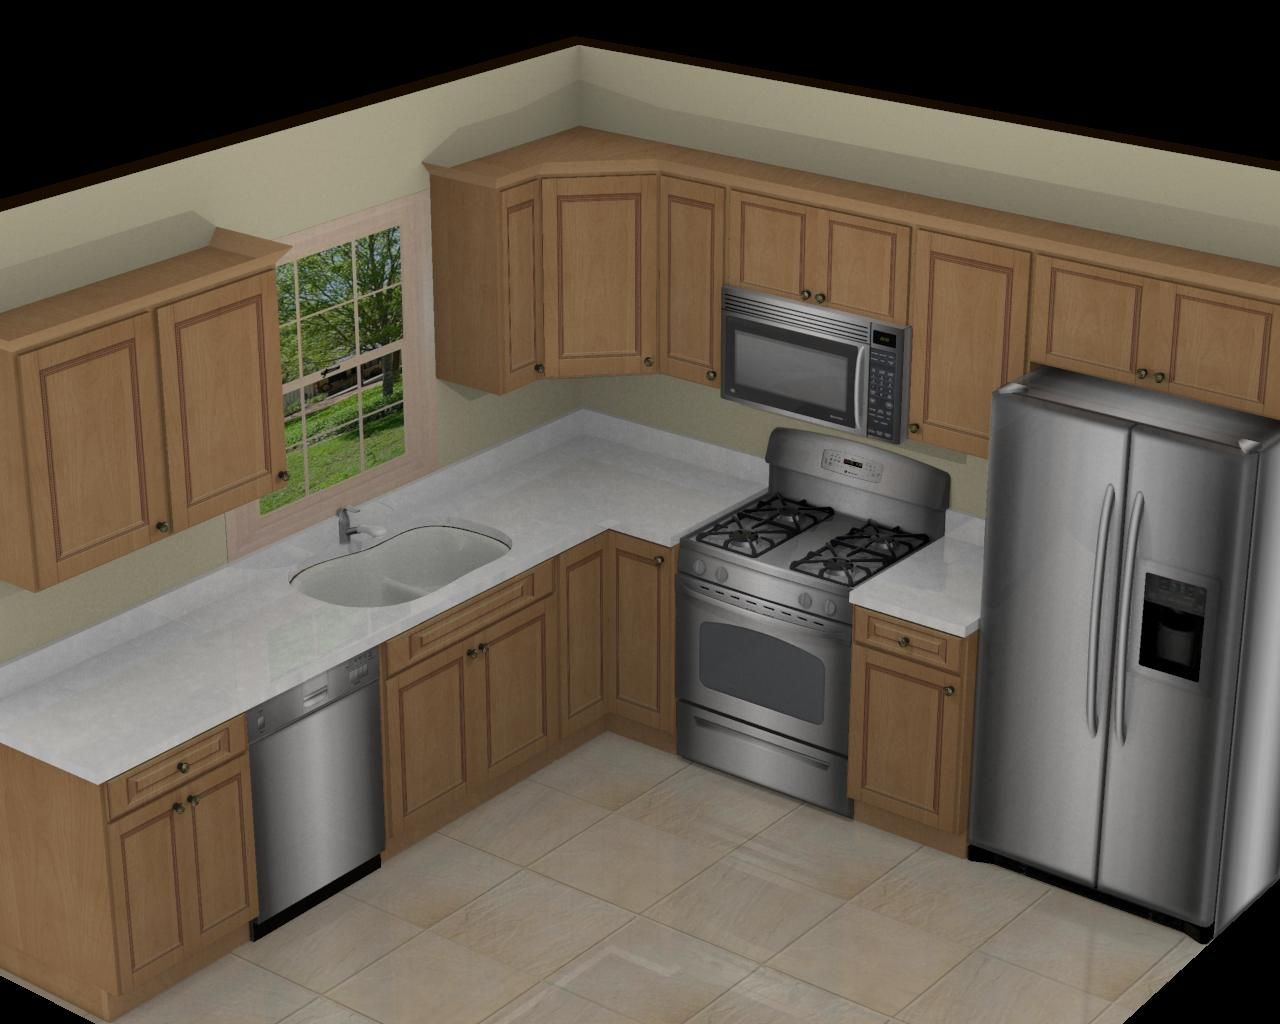 10x10 kitchen 1724